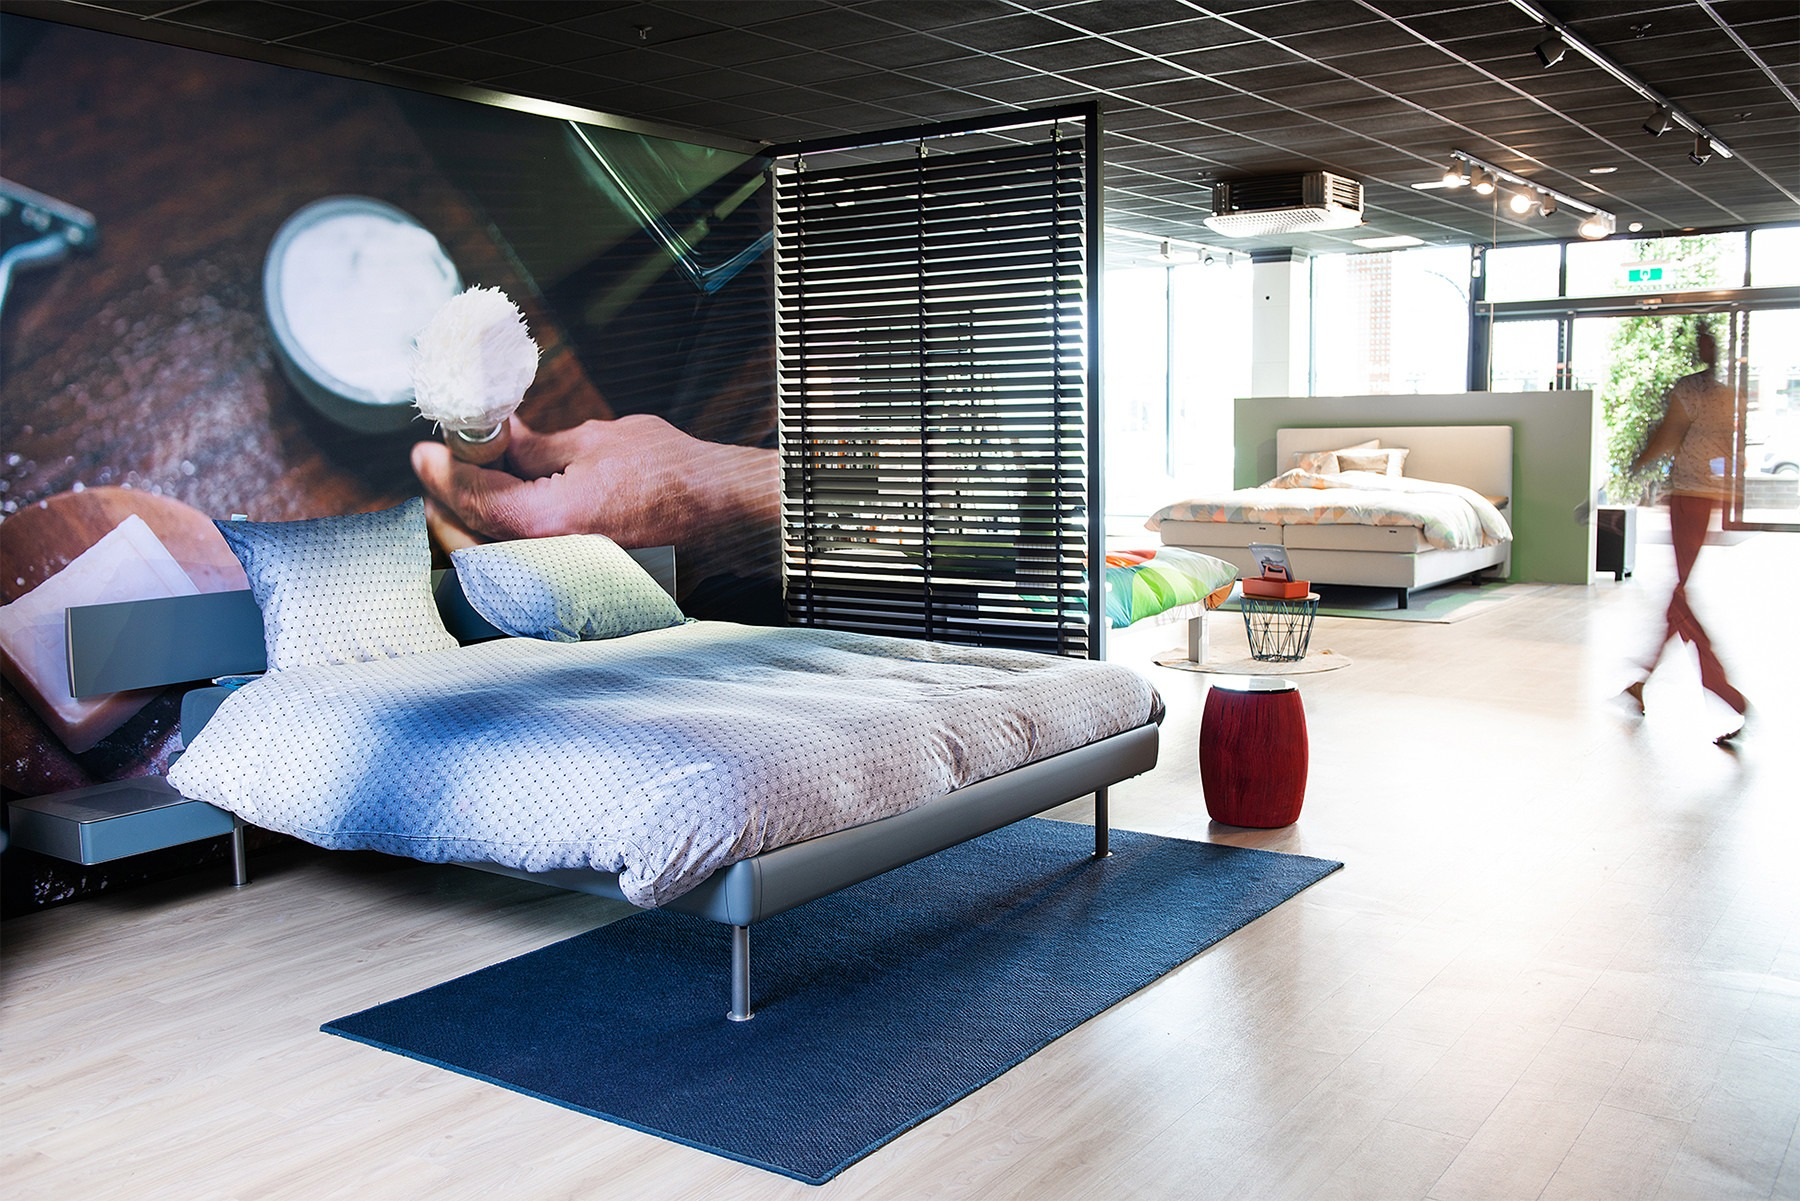 beds venlo auping